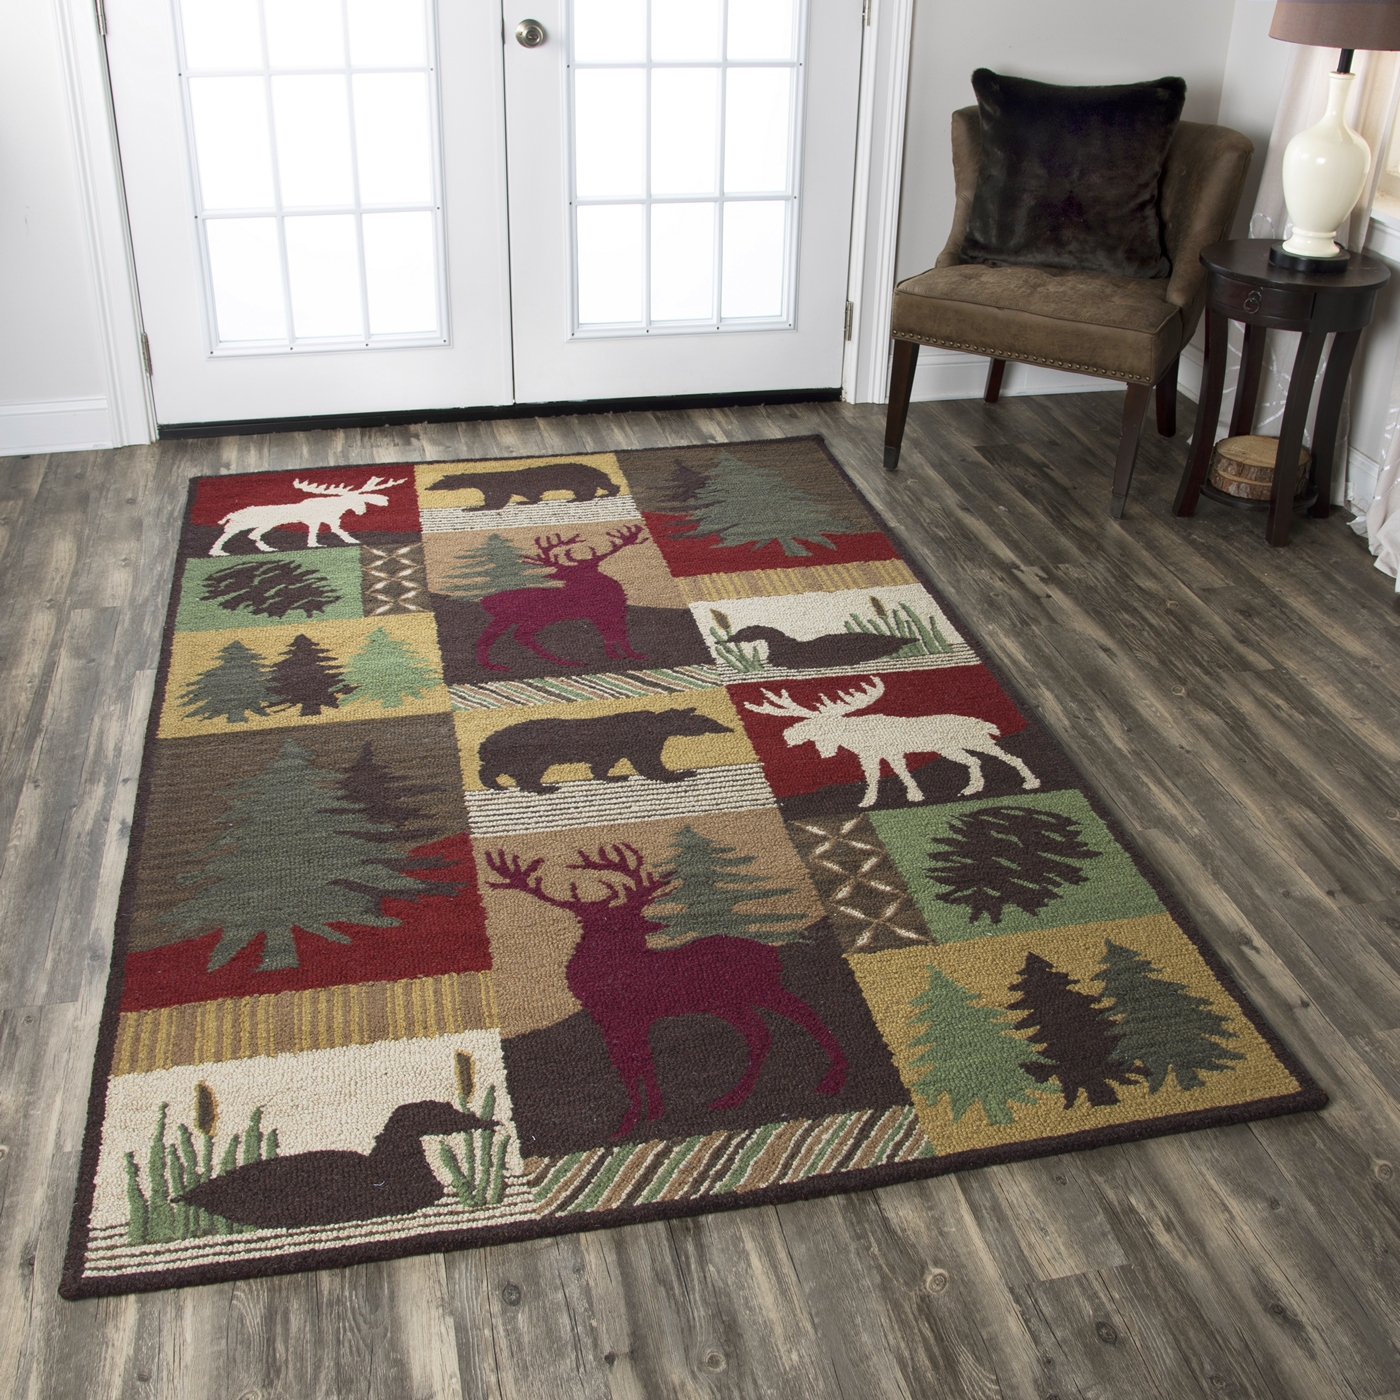 Country Forest Amp Animals Wool Area Rug In Red Brown Green